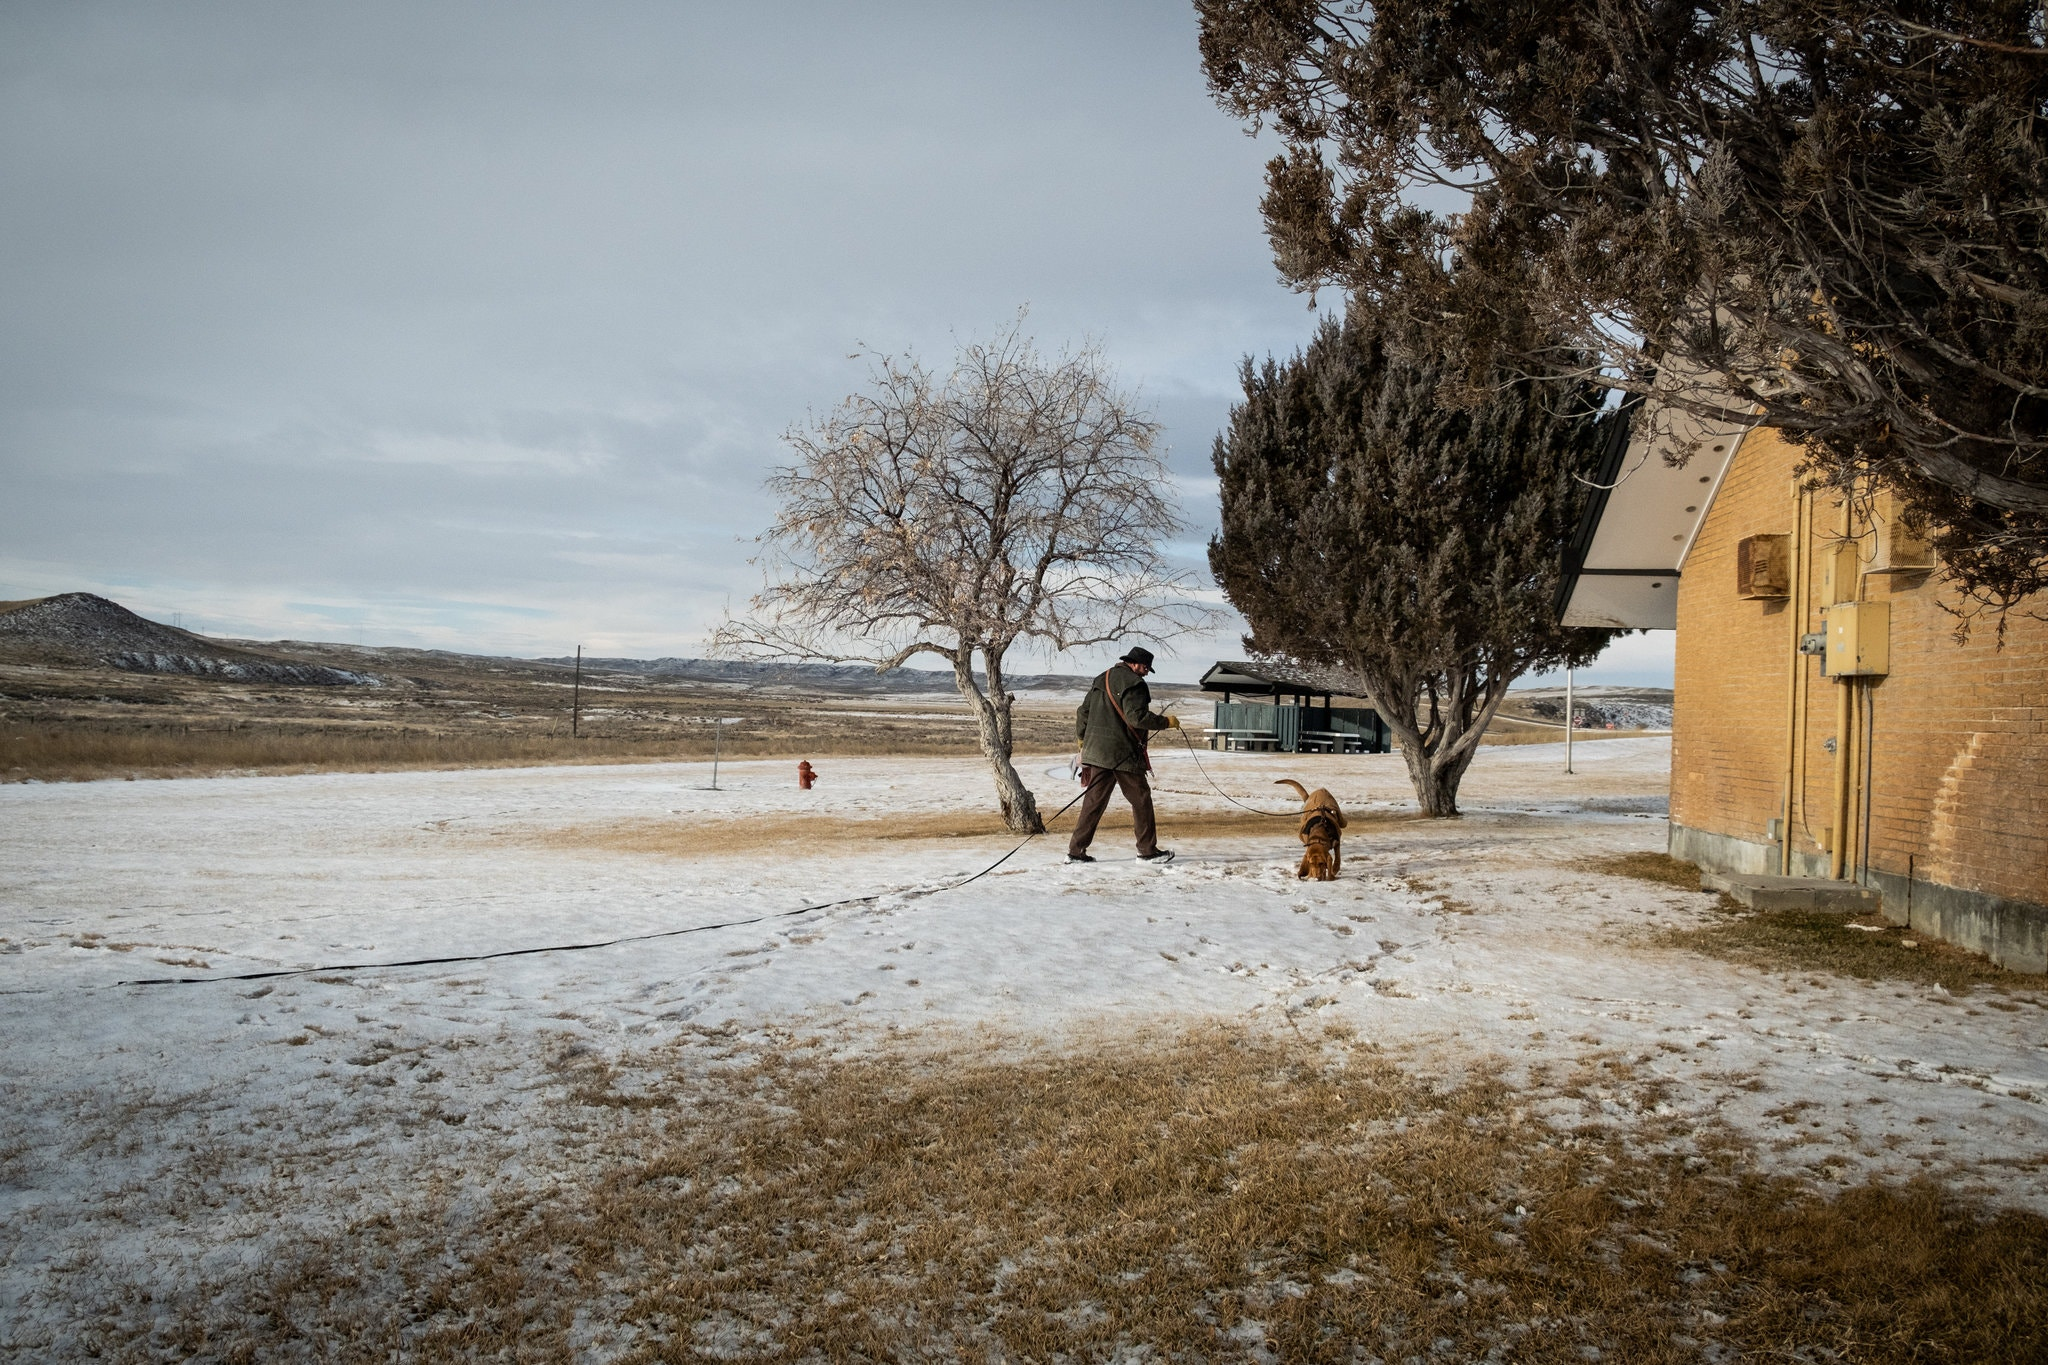 Rural Montana Had Already Lost Too Many Native Women. Then Selena Disappeared